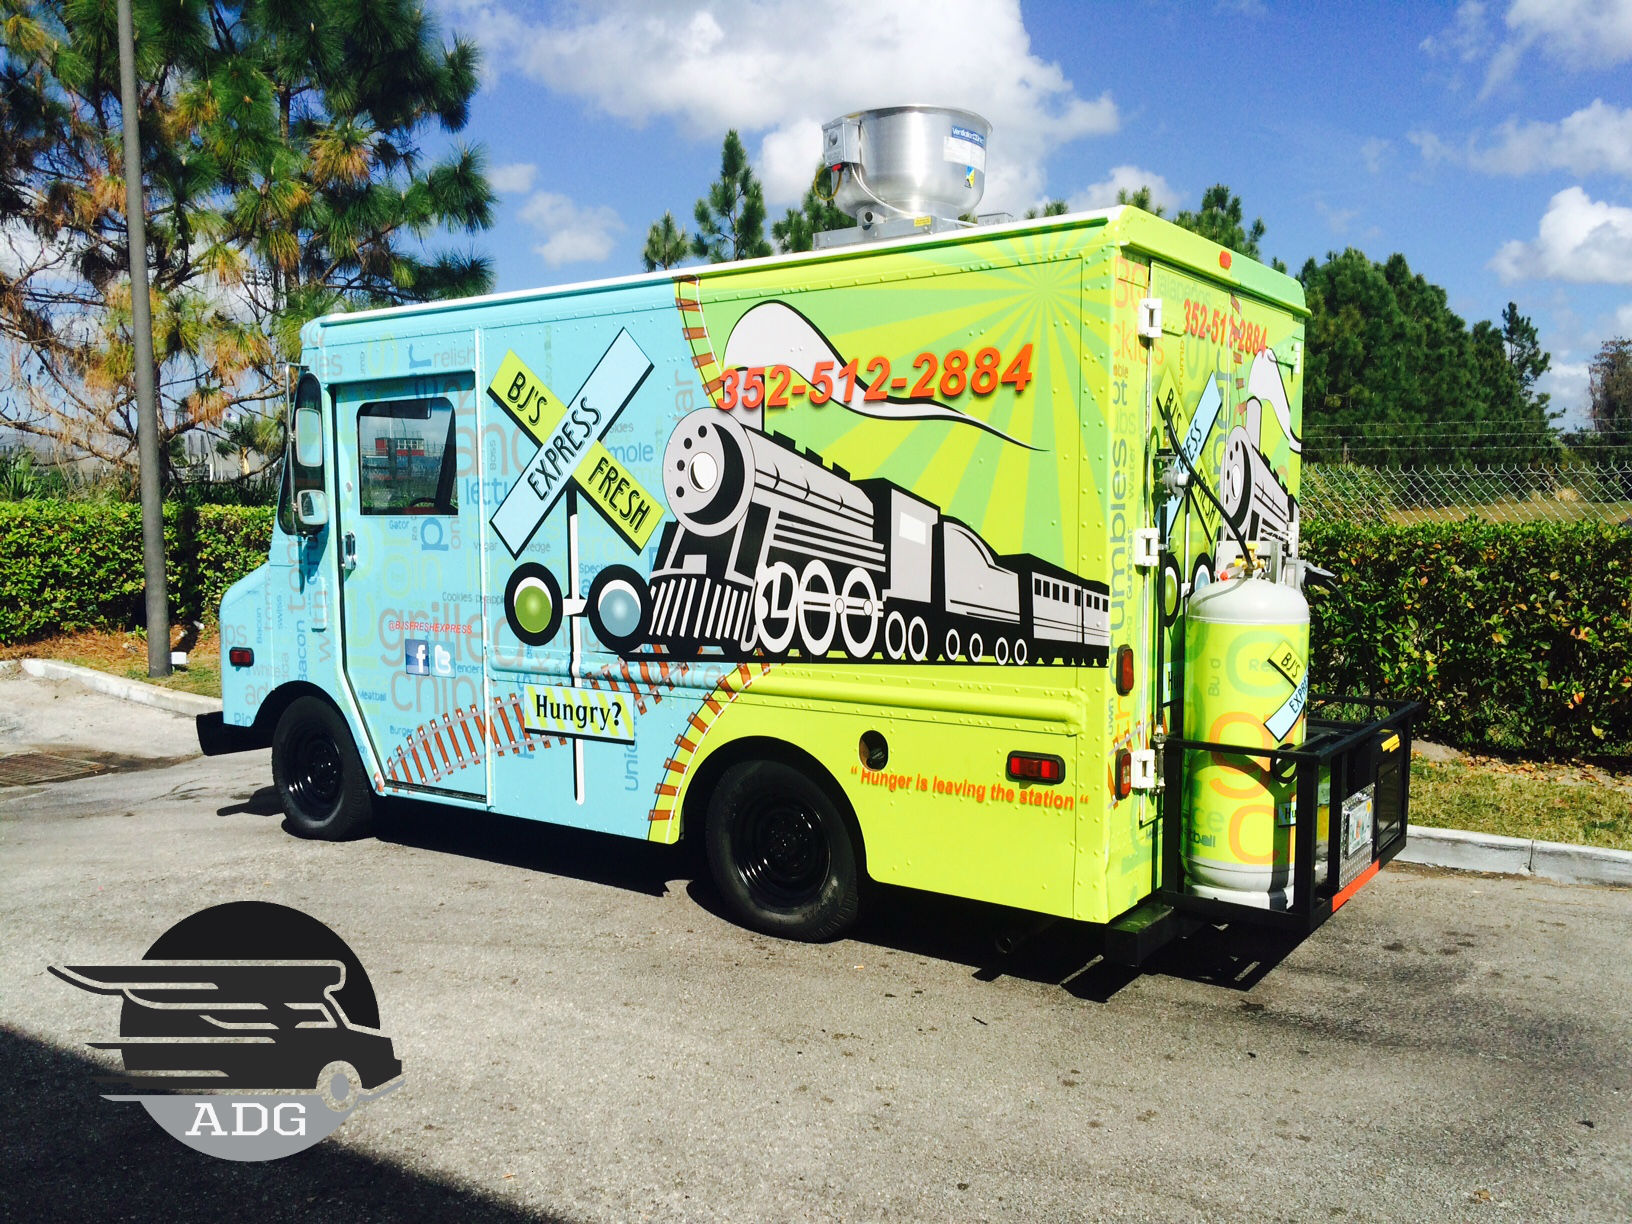 ADG Food Trucks and Trailers